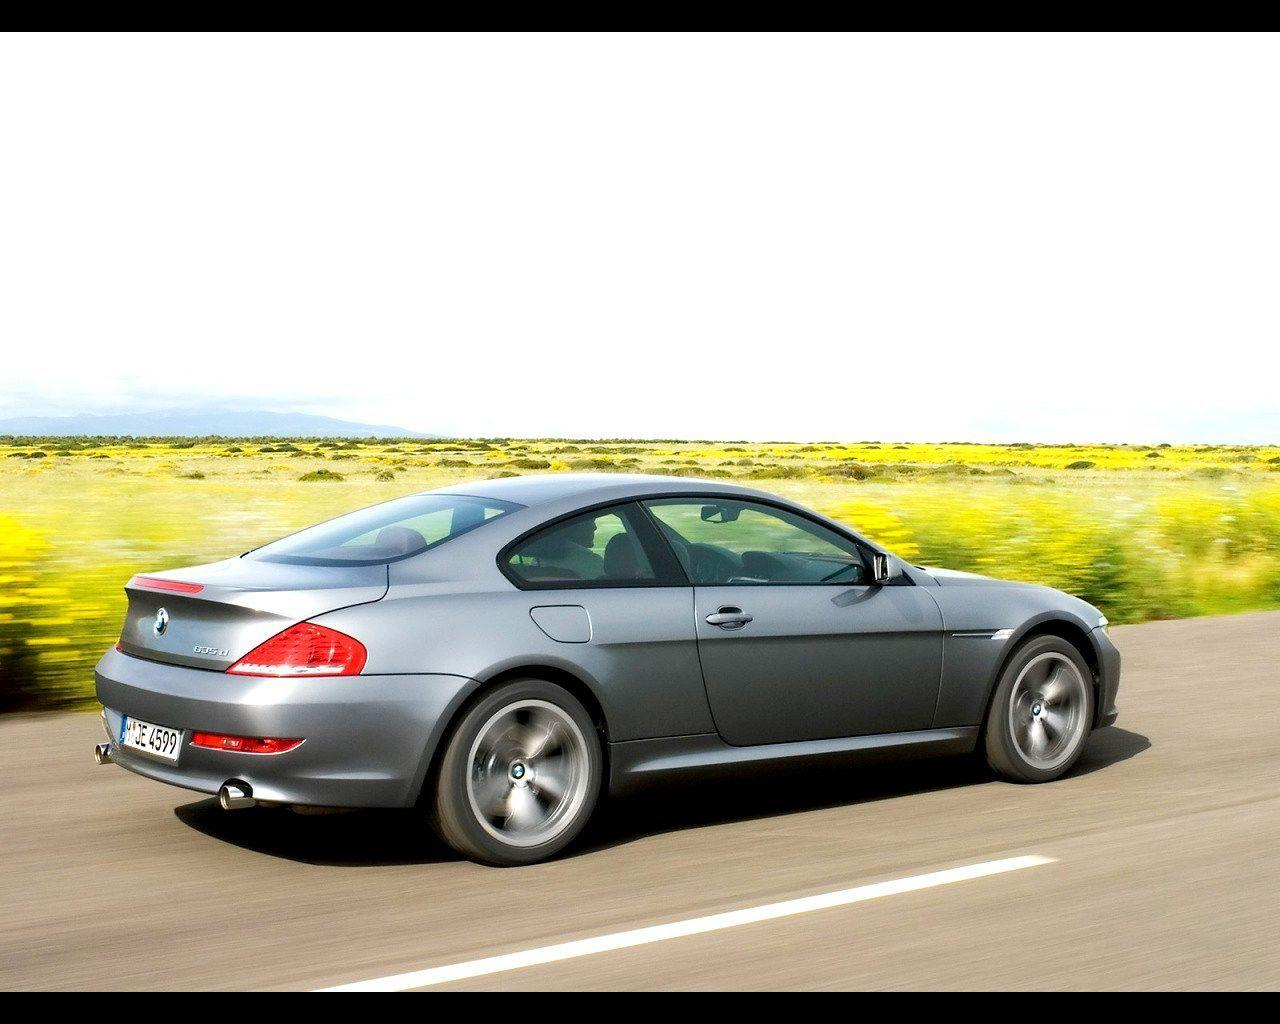 2008 BMW 6 Series Wallpaper 37 - 1280x1024